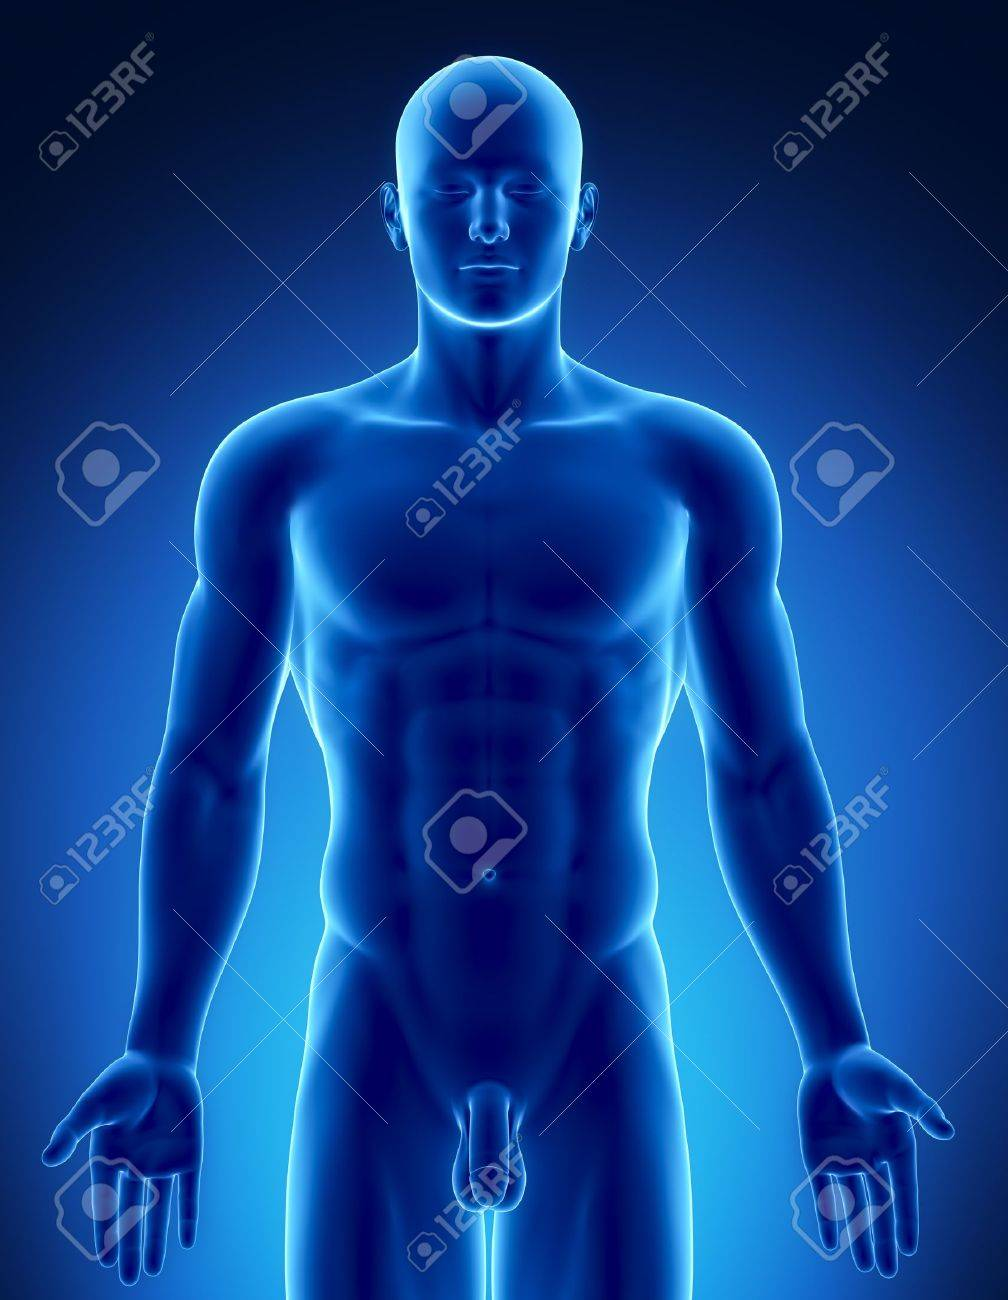 Male anatomy of human organs in x-ray view Stock Photo - 10395447